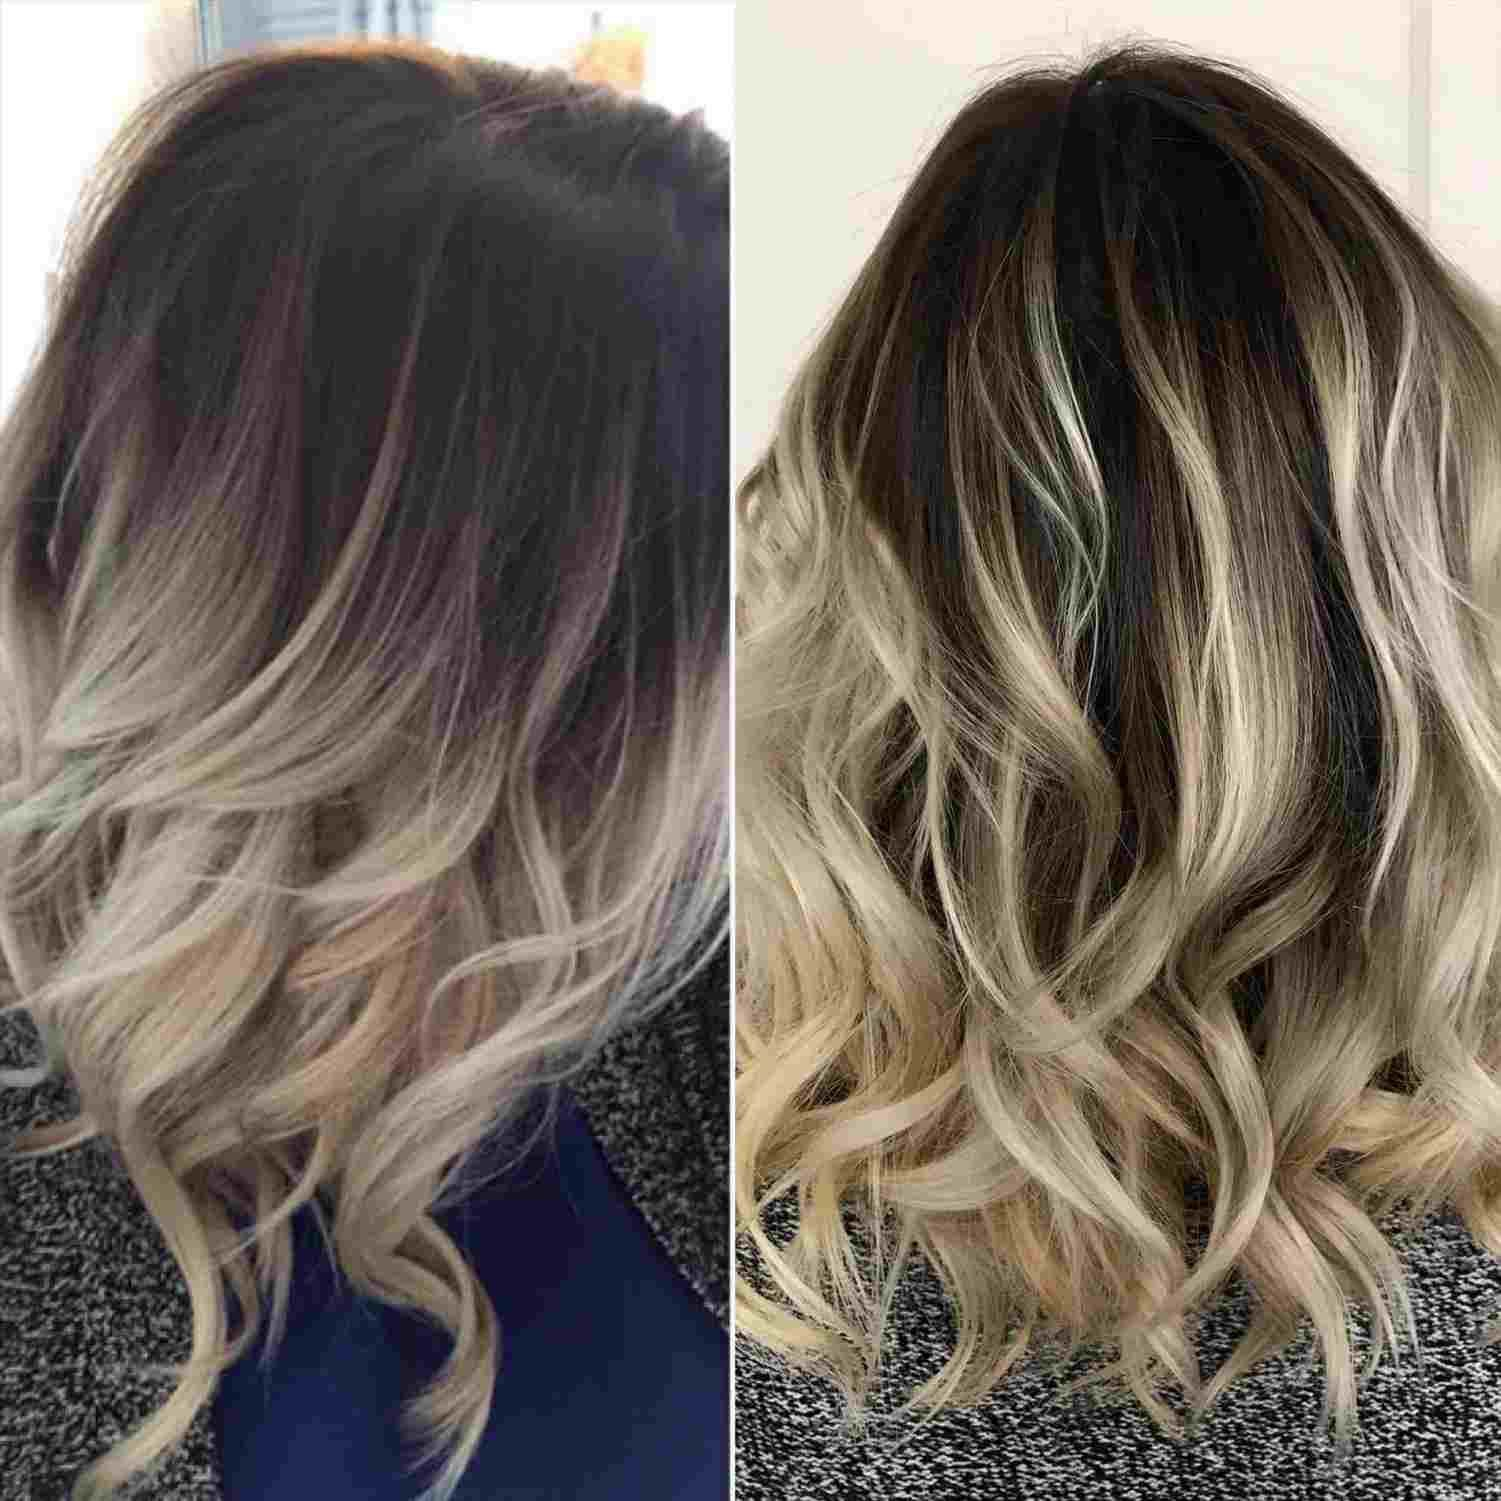 What Color Lowlights For Dark Blonde Hair Best Image Of Dark Roots Blonde Hair Dark Blonde Hair Blonde Hair Color Chart